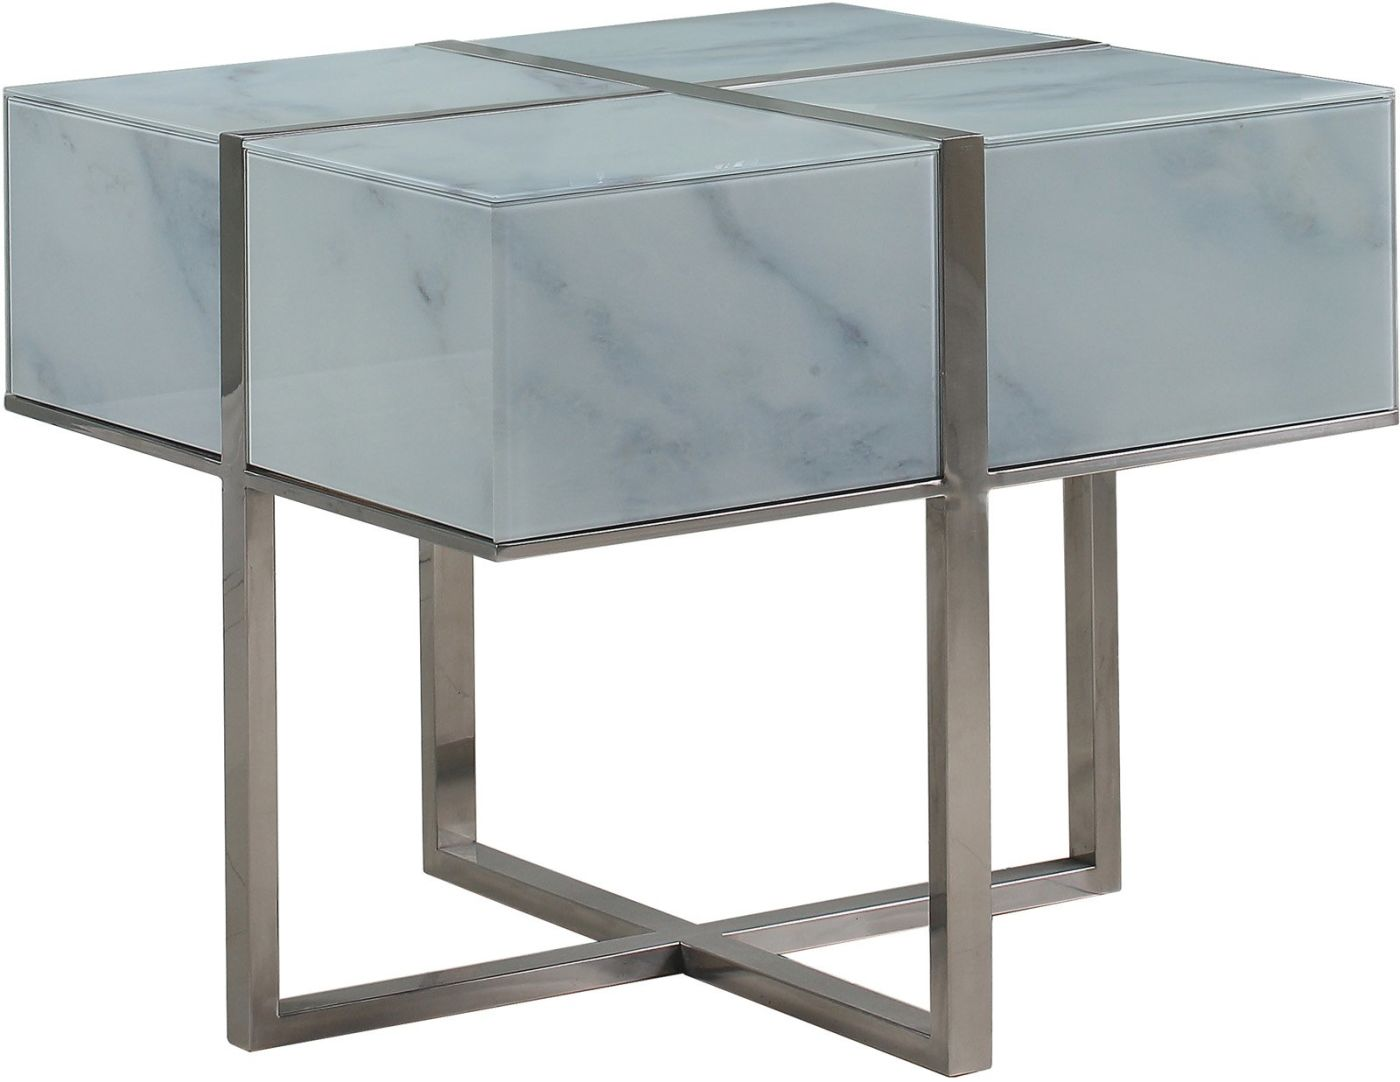 Favorite Marble End Tables on sale at Contemporary Furniture Warehouse at  YR11